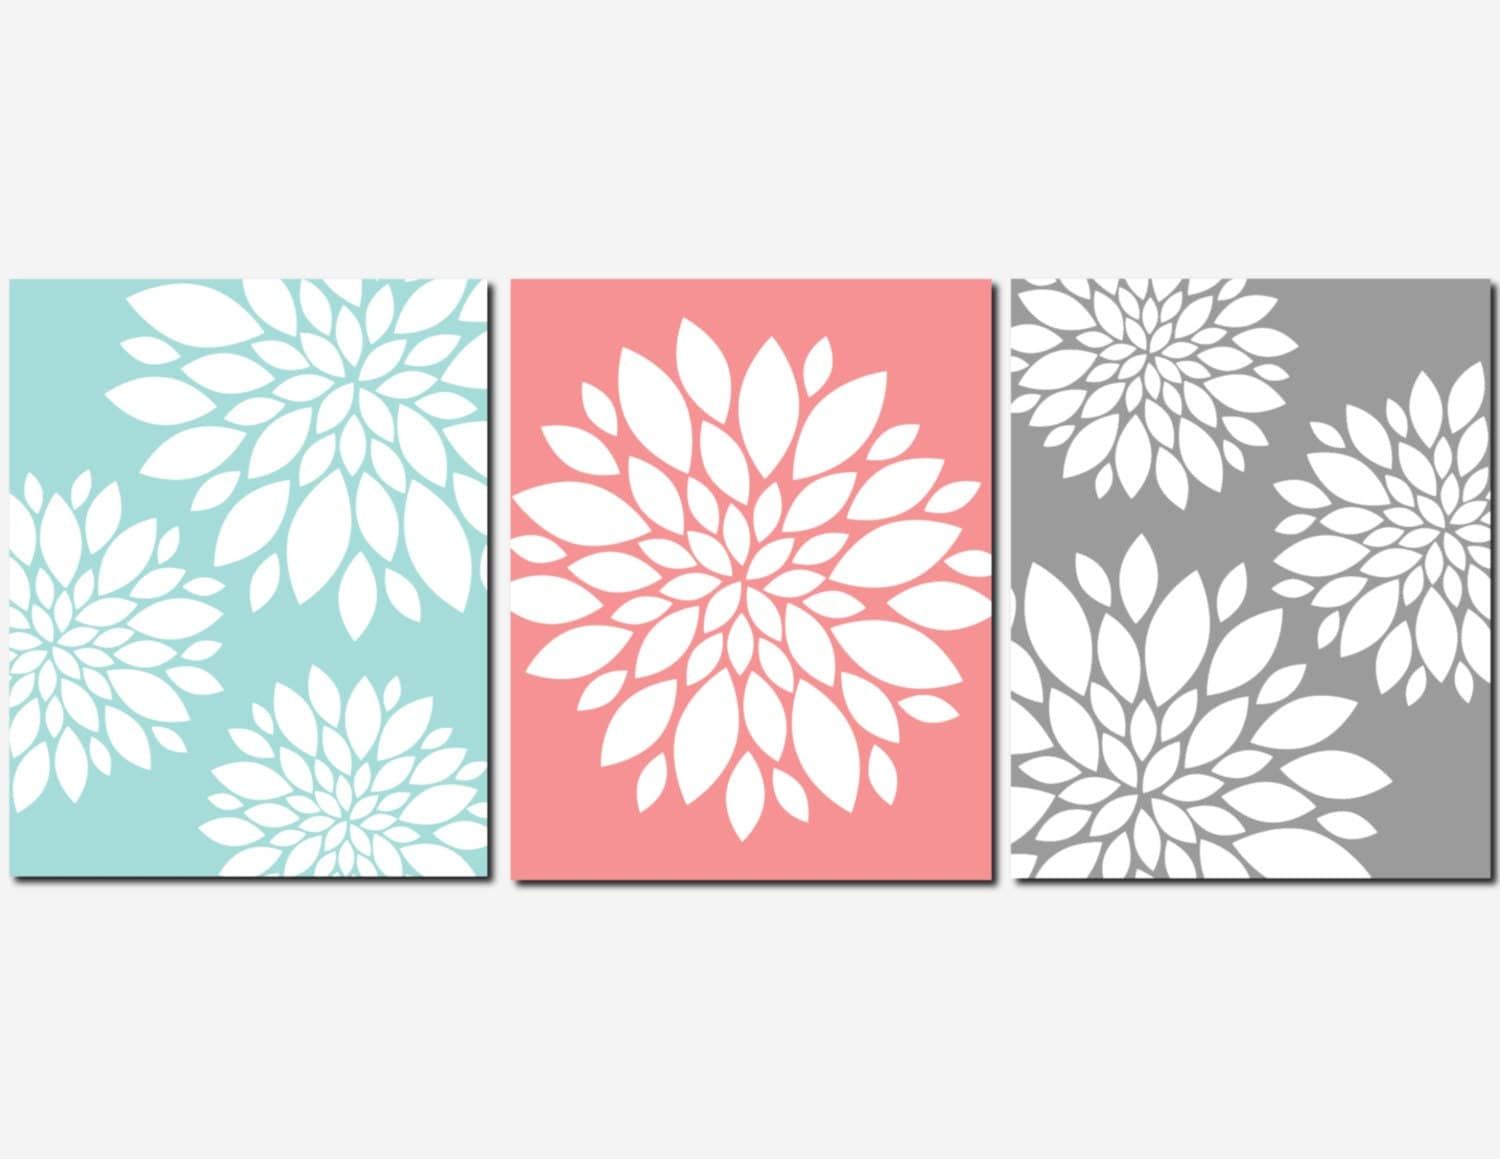 Coral aqua gray wall art home decor flower burst floral for Floral wall art